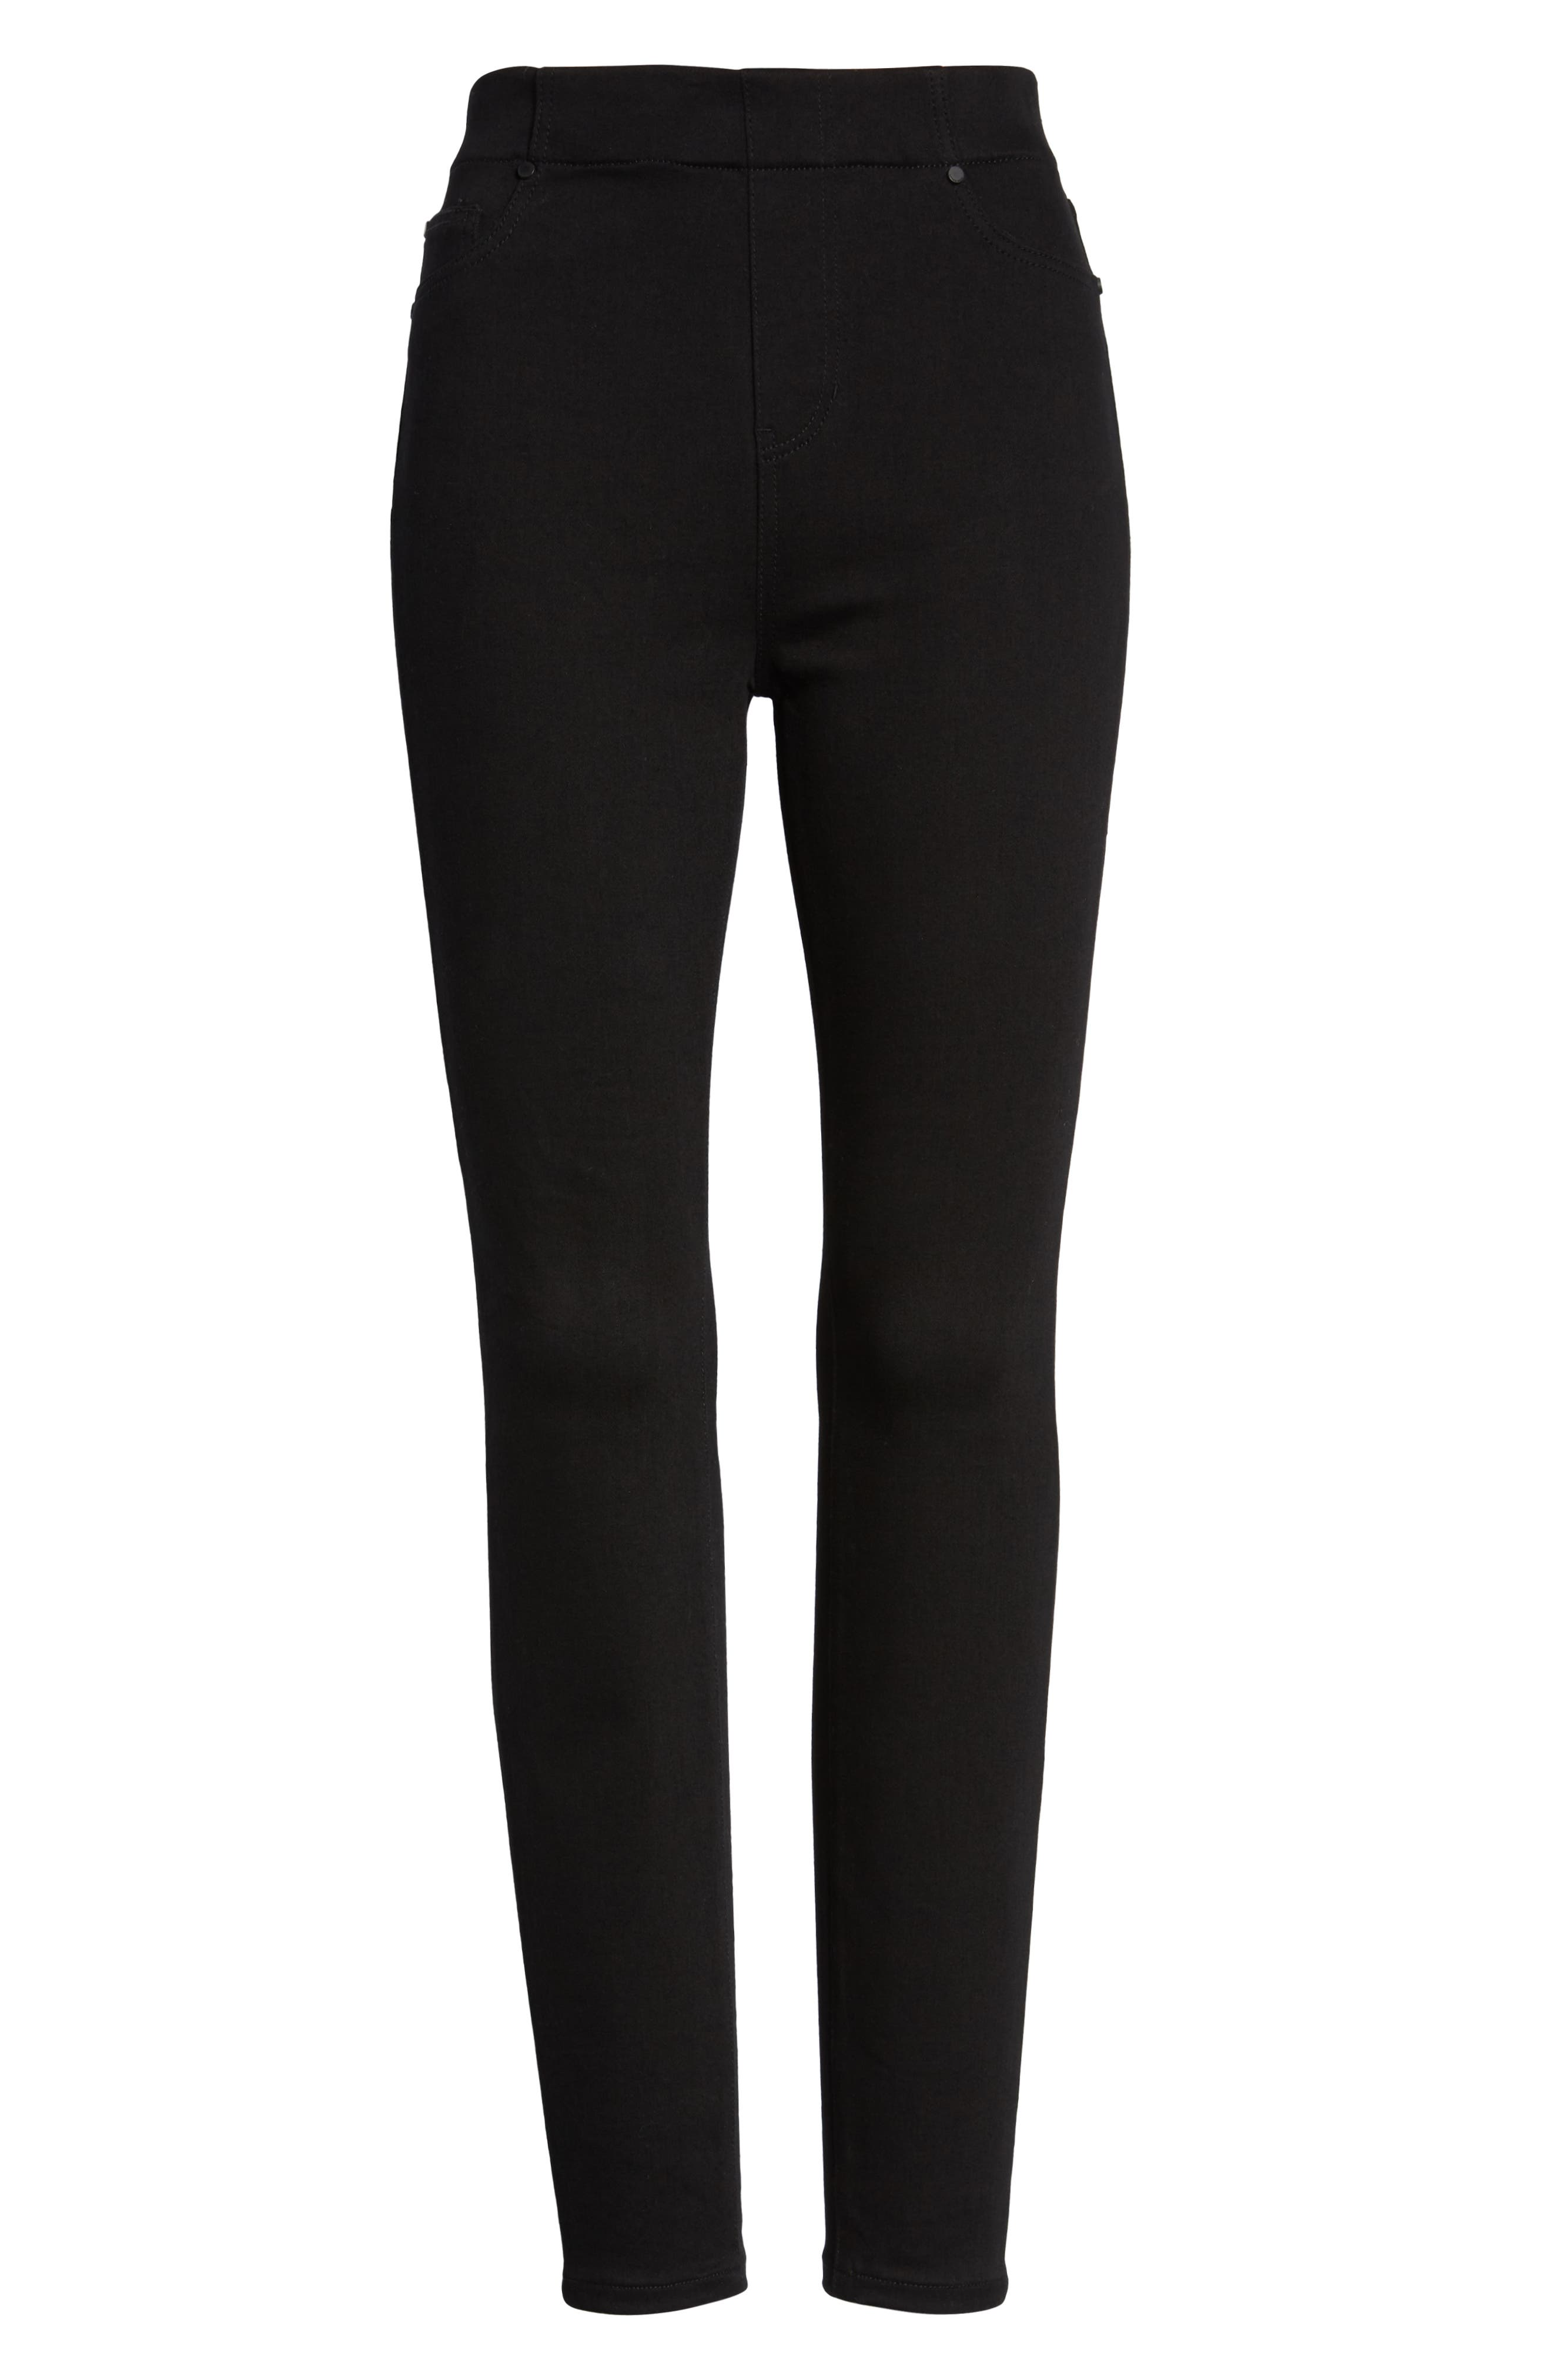 Chloe Pull-On Stretch Skinny Ankle Jeans,                             Alternate thumbnail 6, color,                             BLACK RINSE